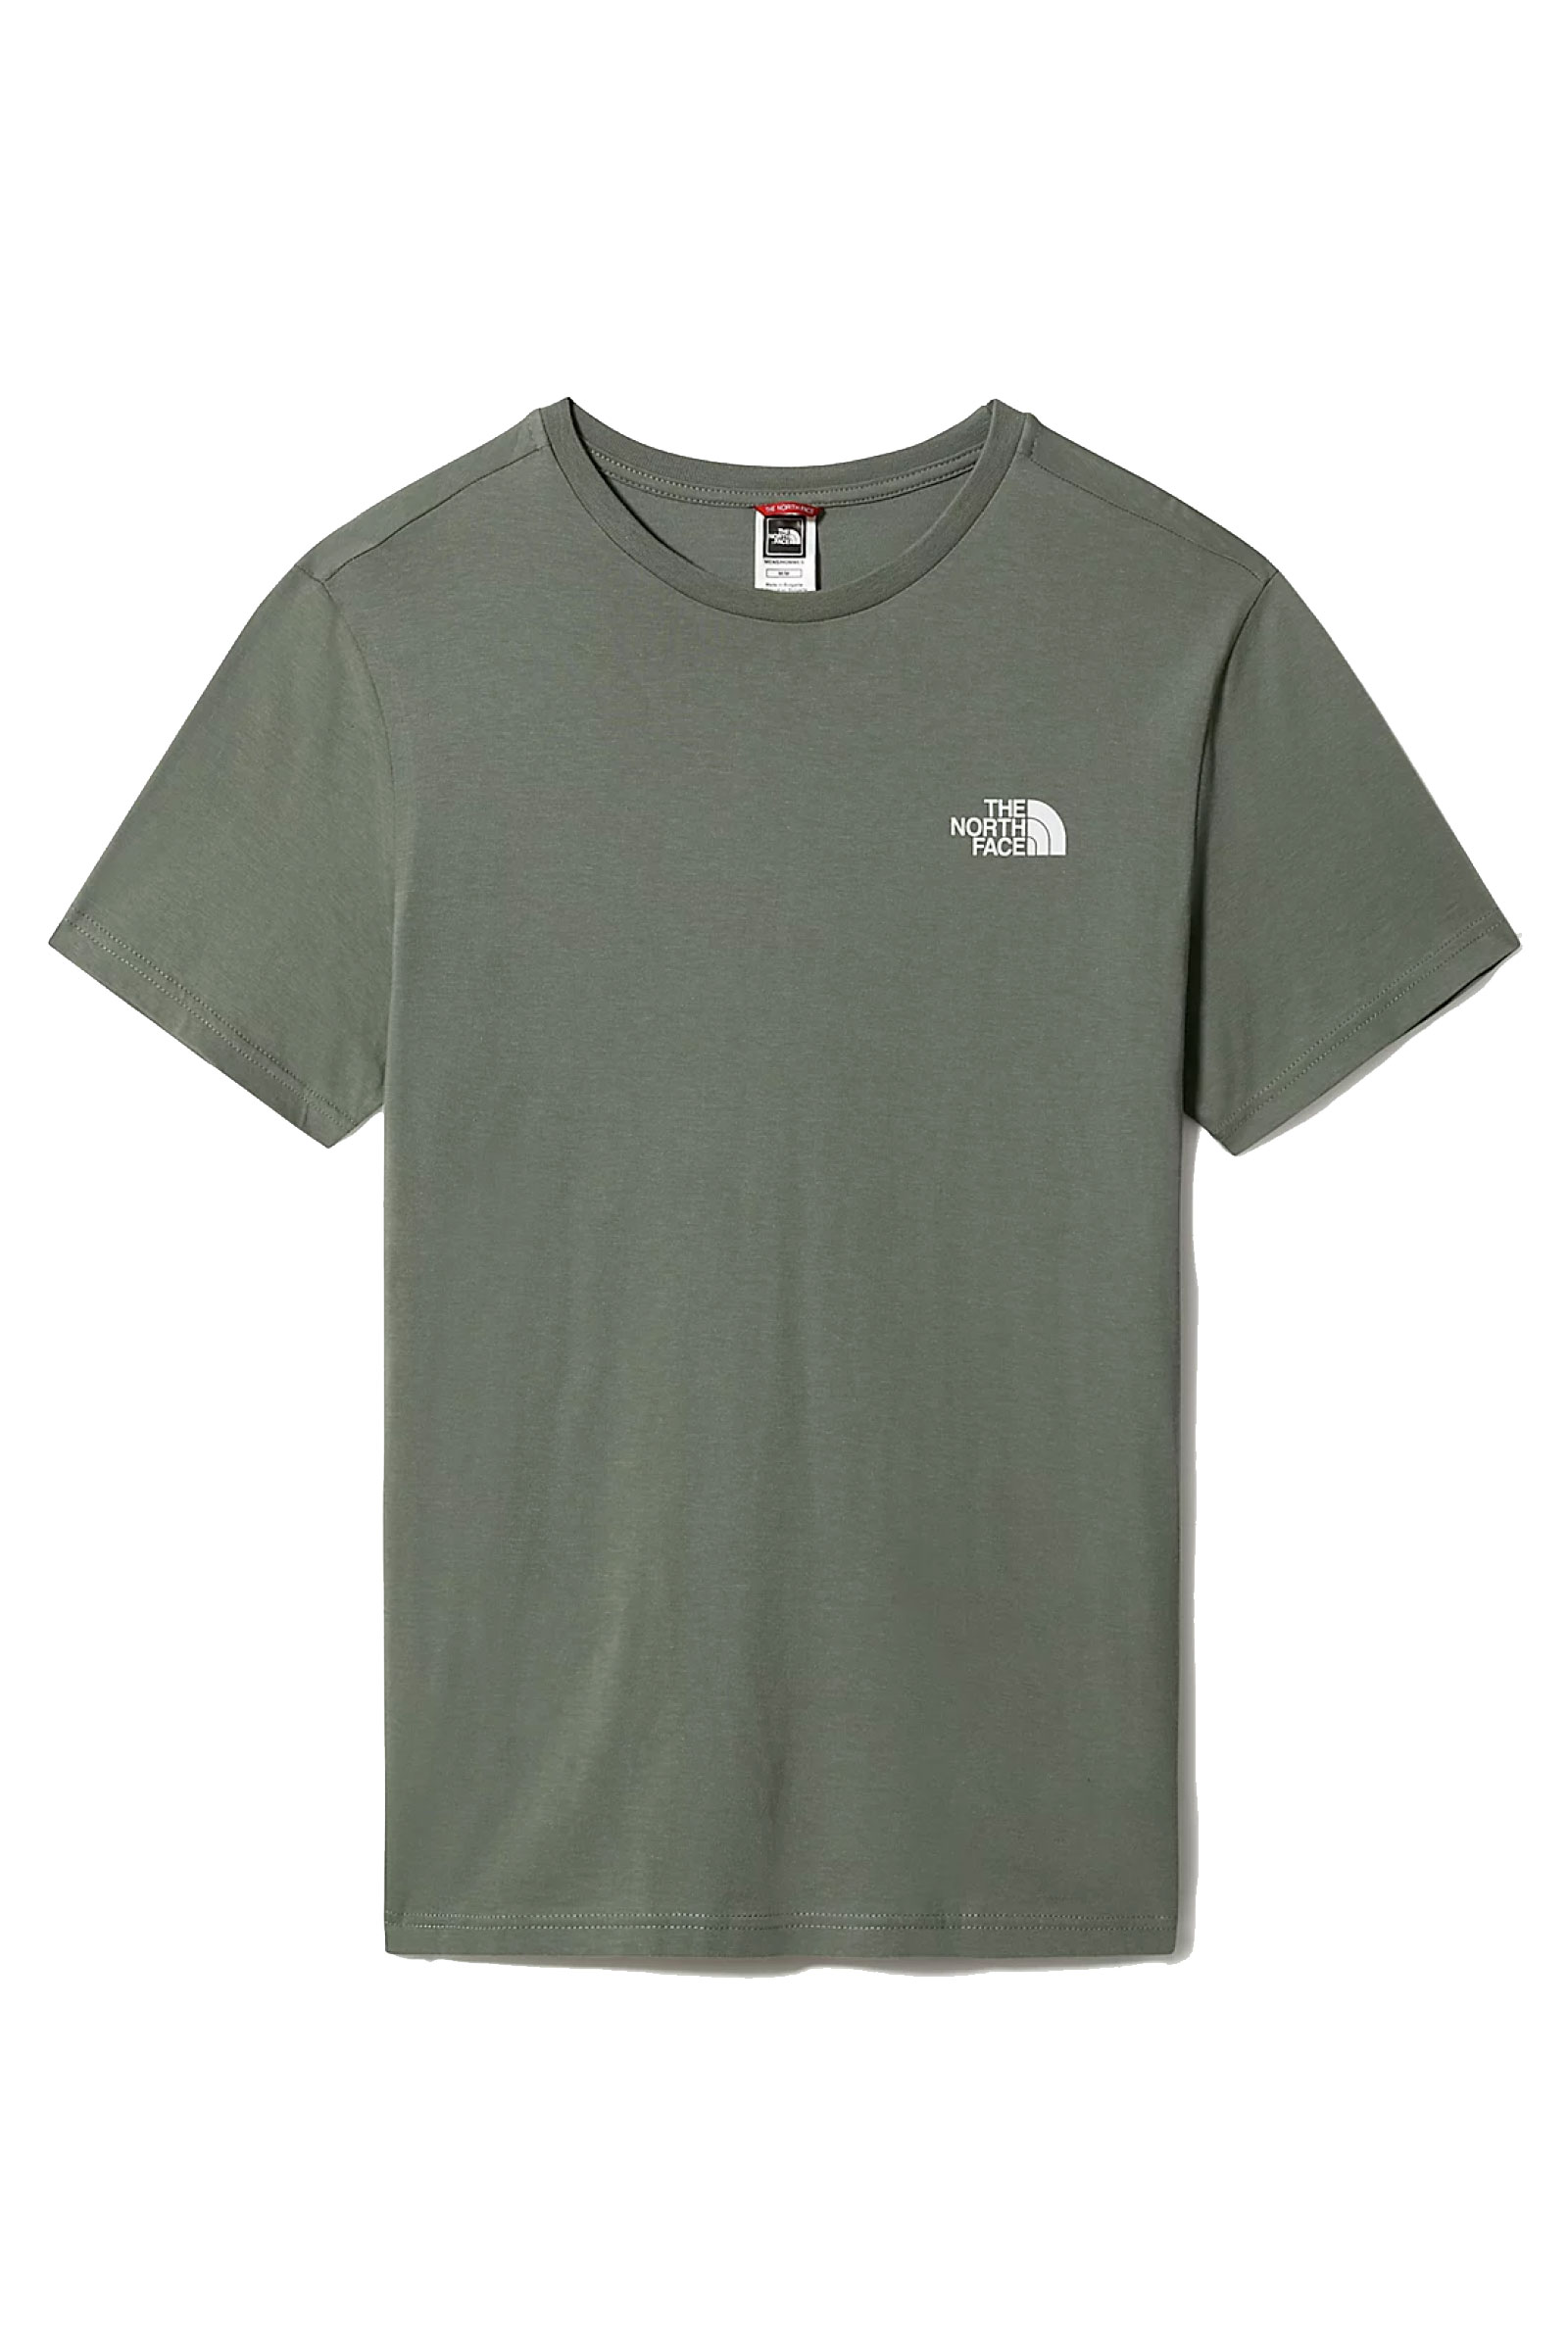 THE NORTH FACE | T-Shirt | NF0A2TX5V381